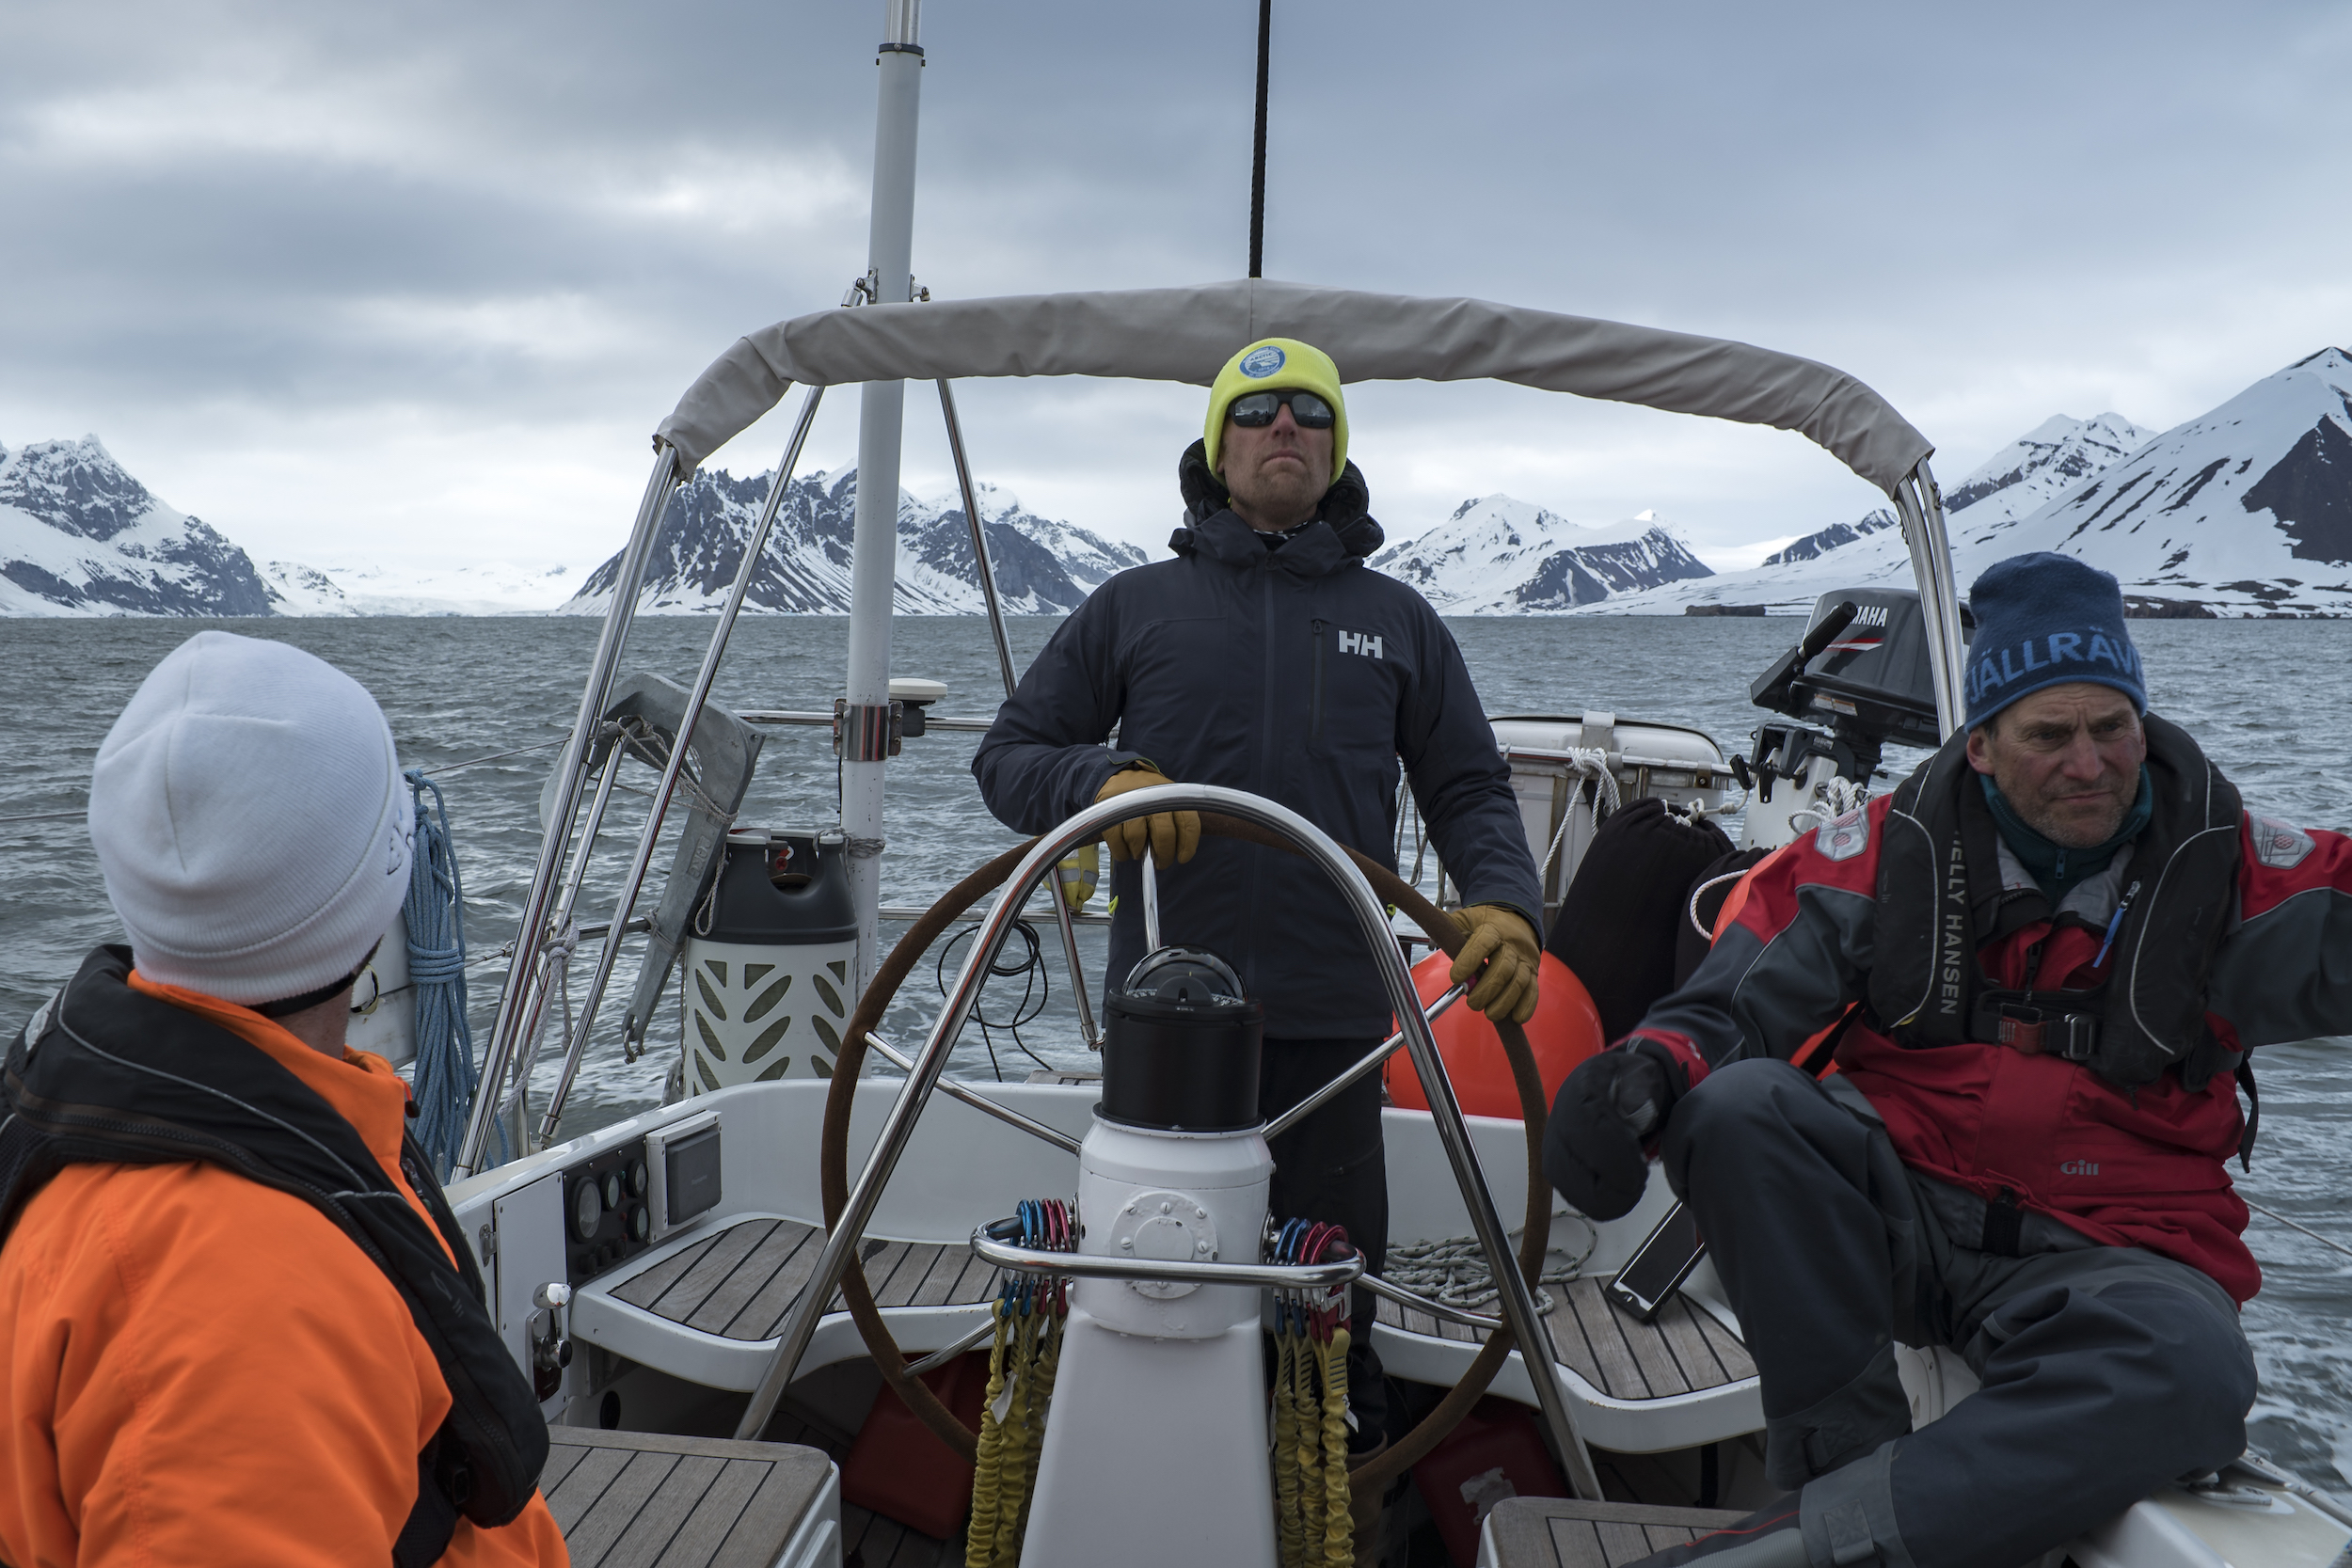 The captain, focused, as we sailed amongst the ice in Burgerbukta.